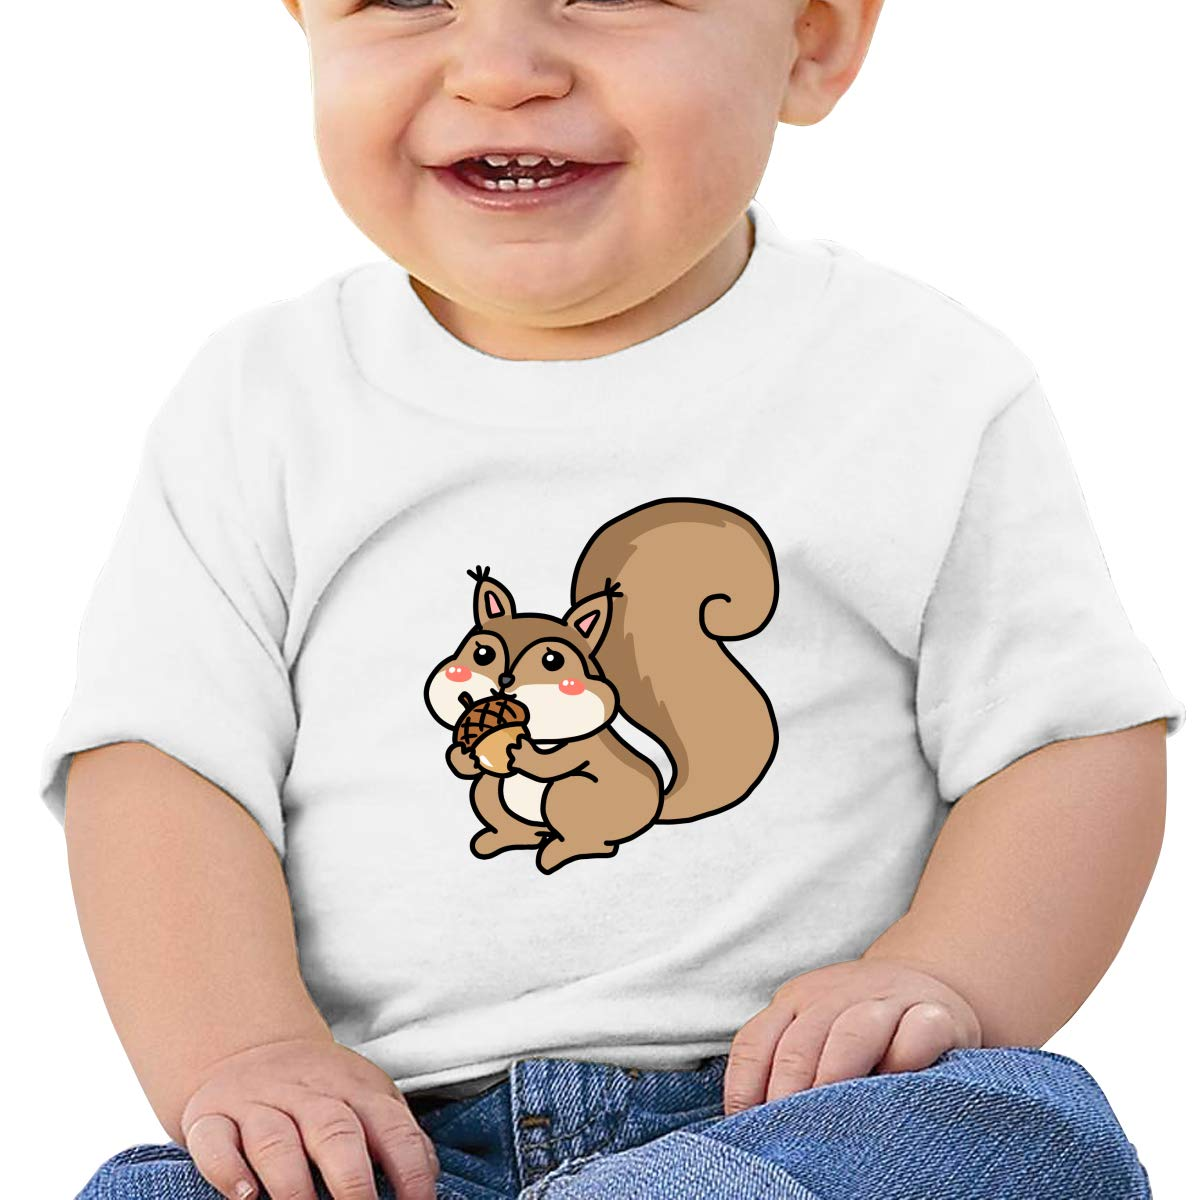 ShenigonThe Squirrel Toddler//Infant Short Sleeve Cotton T Shirts White